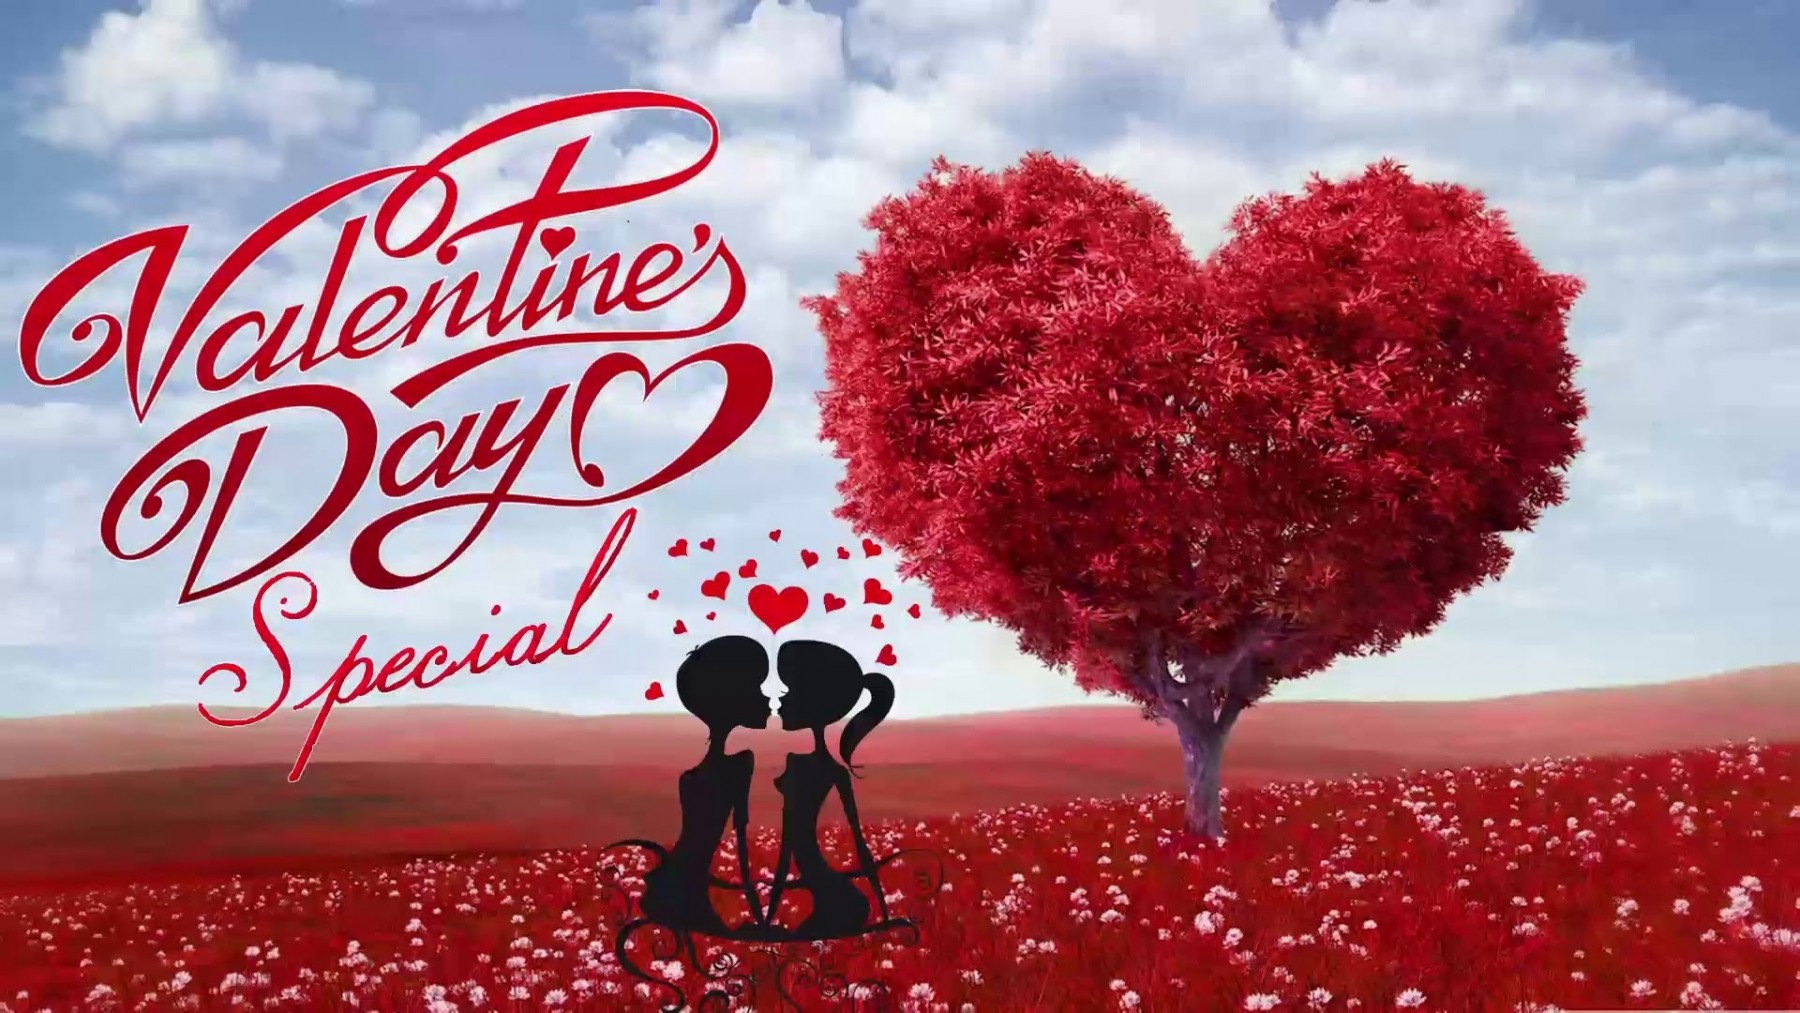 valentines day Status in Hindi valentines day Status in Hindi For Girlfriend valentines day Status in Hindi For Boyfriend valentines day Status in Hindi For LOve valentines day Status in Hindi For GF valentines day Status in Hindi For BF valentines day Status in Hindi For Whatsapp valentines day Status in Hindi For Facebook 175+ valentines day Status in Hindi For Romantice Couple We Have Updated Latest Collection on valentines day Status in Hindi For Girlfriend, Boyfriend, Love, GF, BF, You Can Share it on Whatsapp & Facebook Etc.